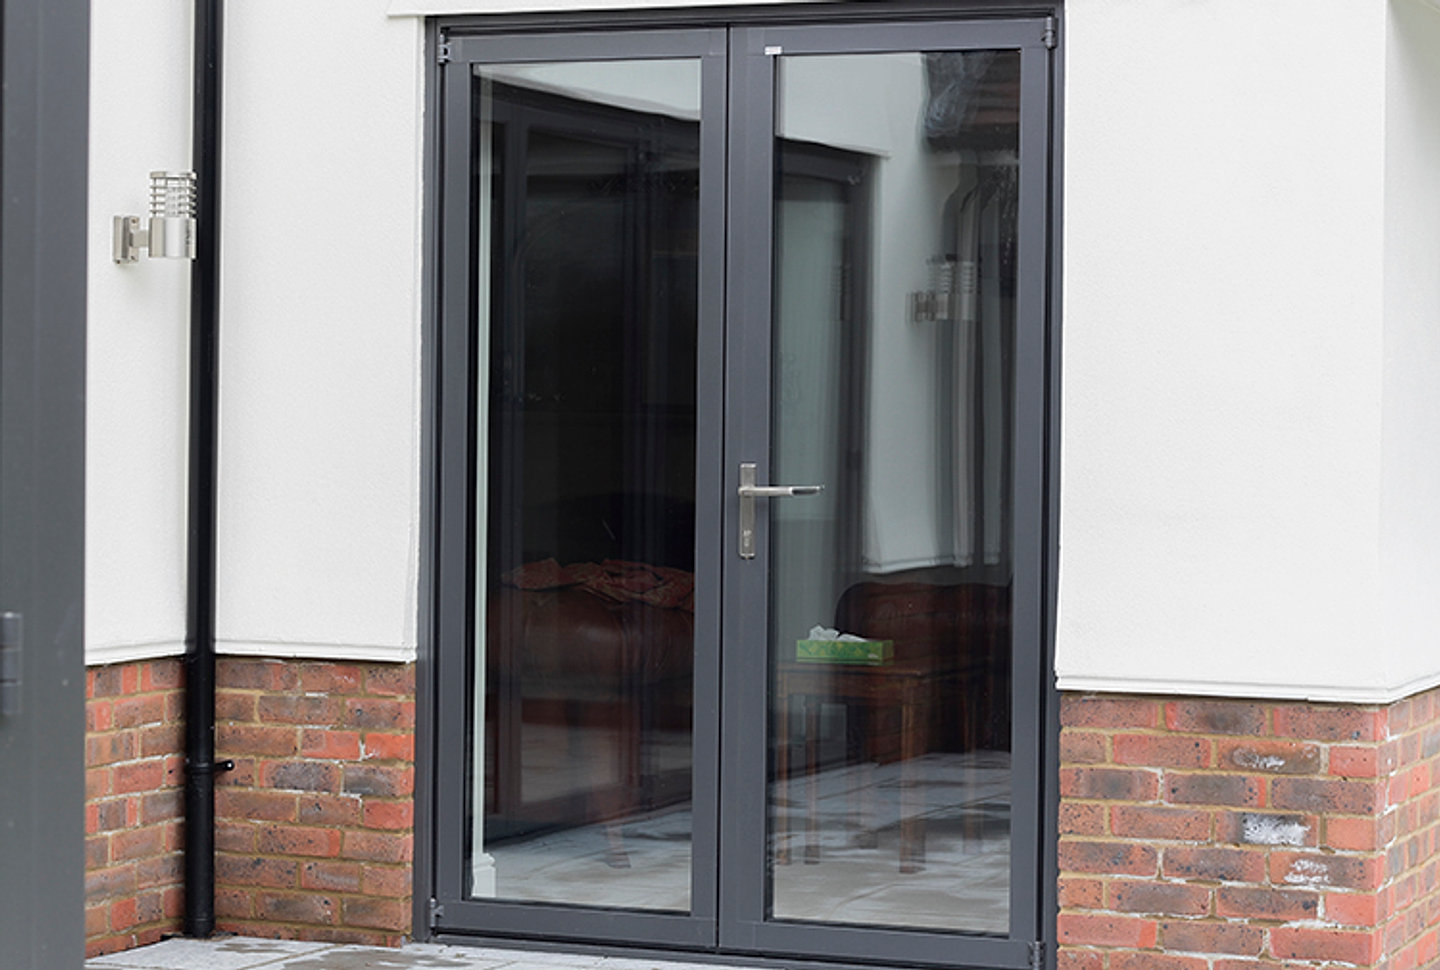 Solarlux-SL-60e-Bifolding-Door-and-Solarlux-French- & Kew Windows | Windows In South London | Richmond | French Doors